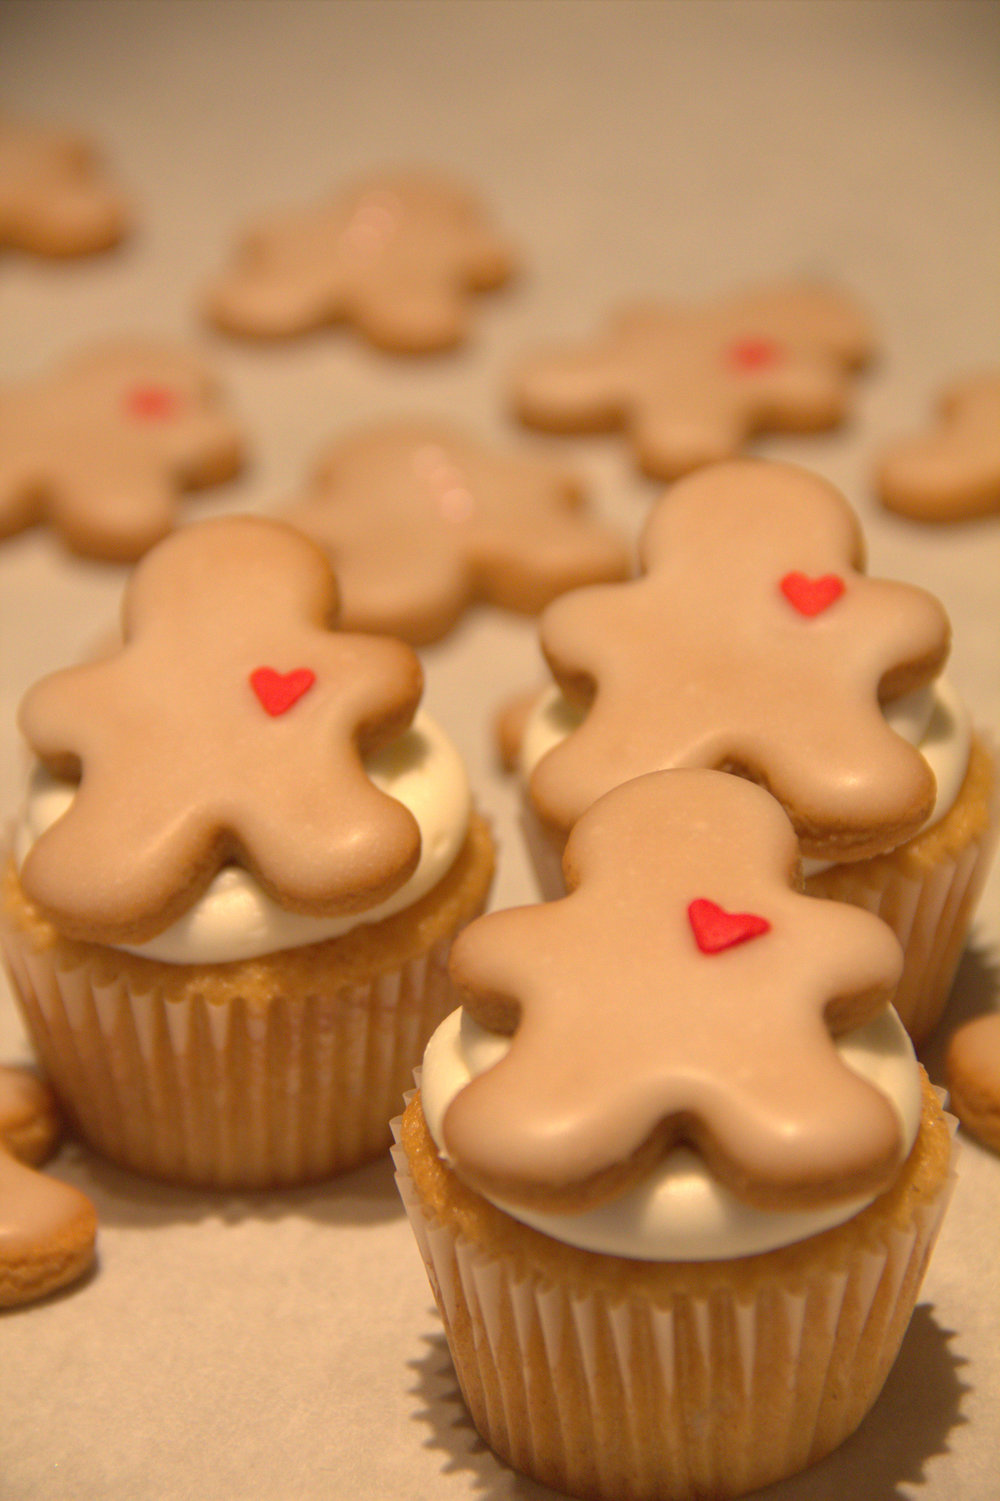 Confections12 - mini Gingerbread man cupcakes.jpg